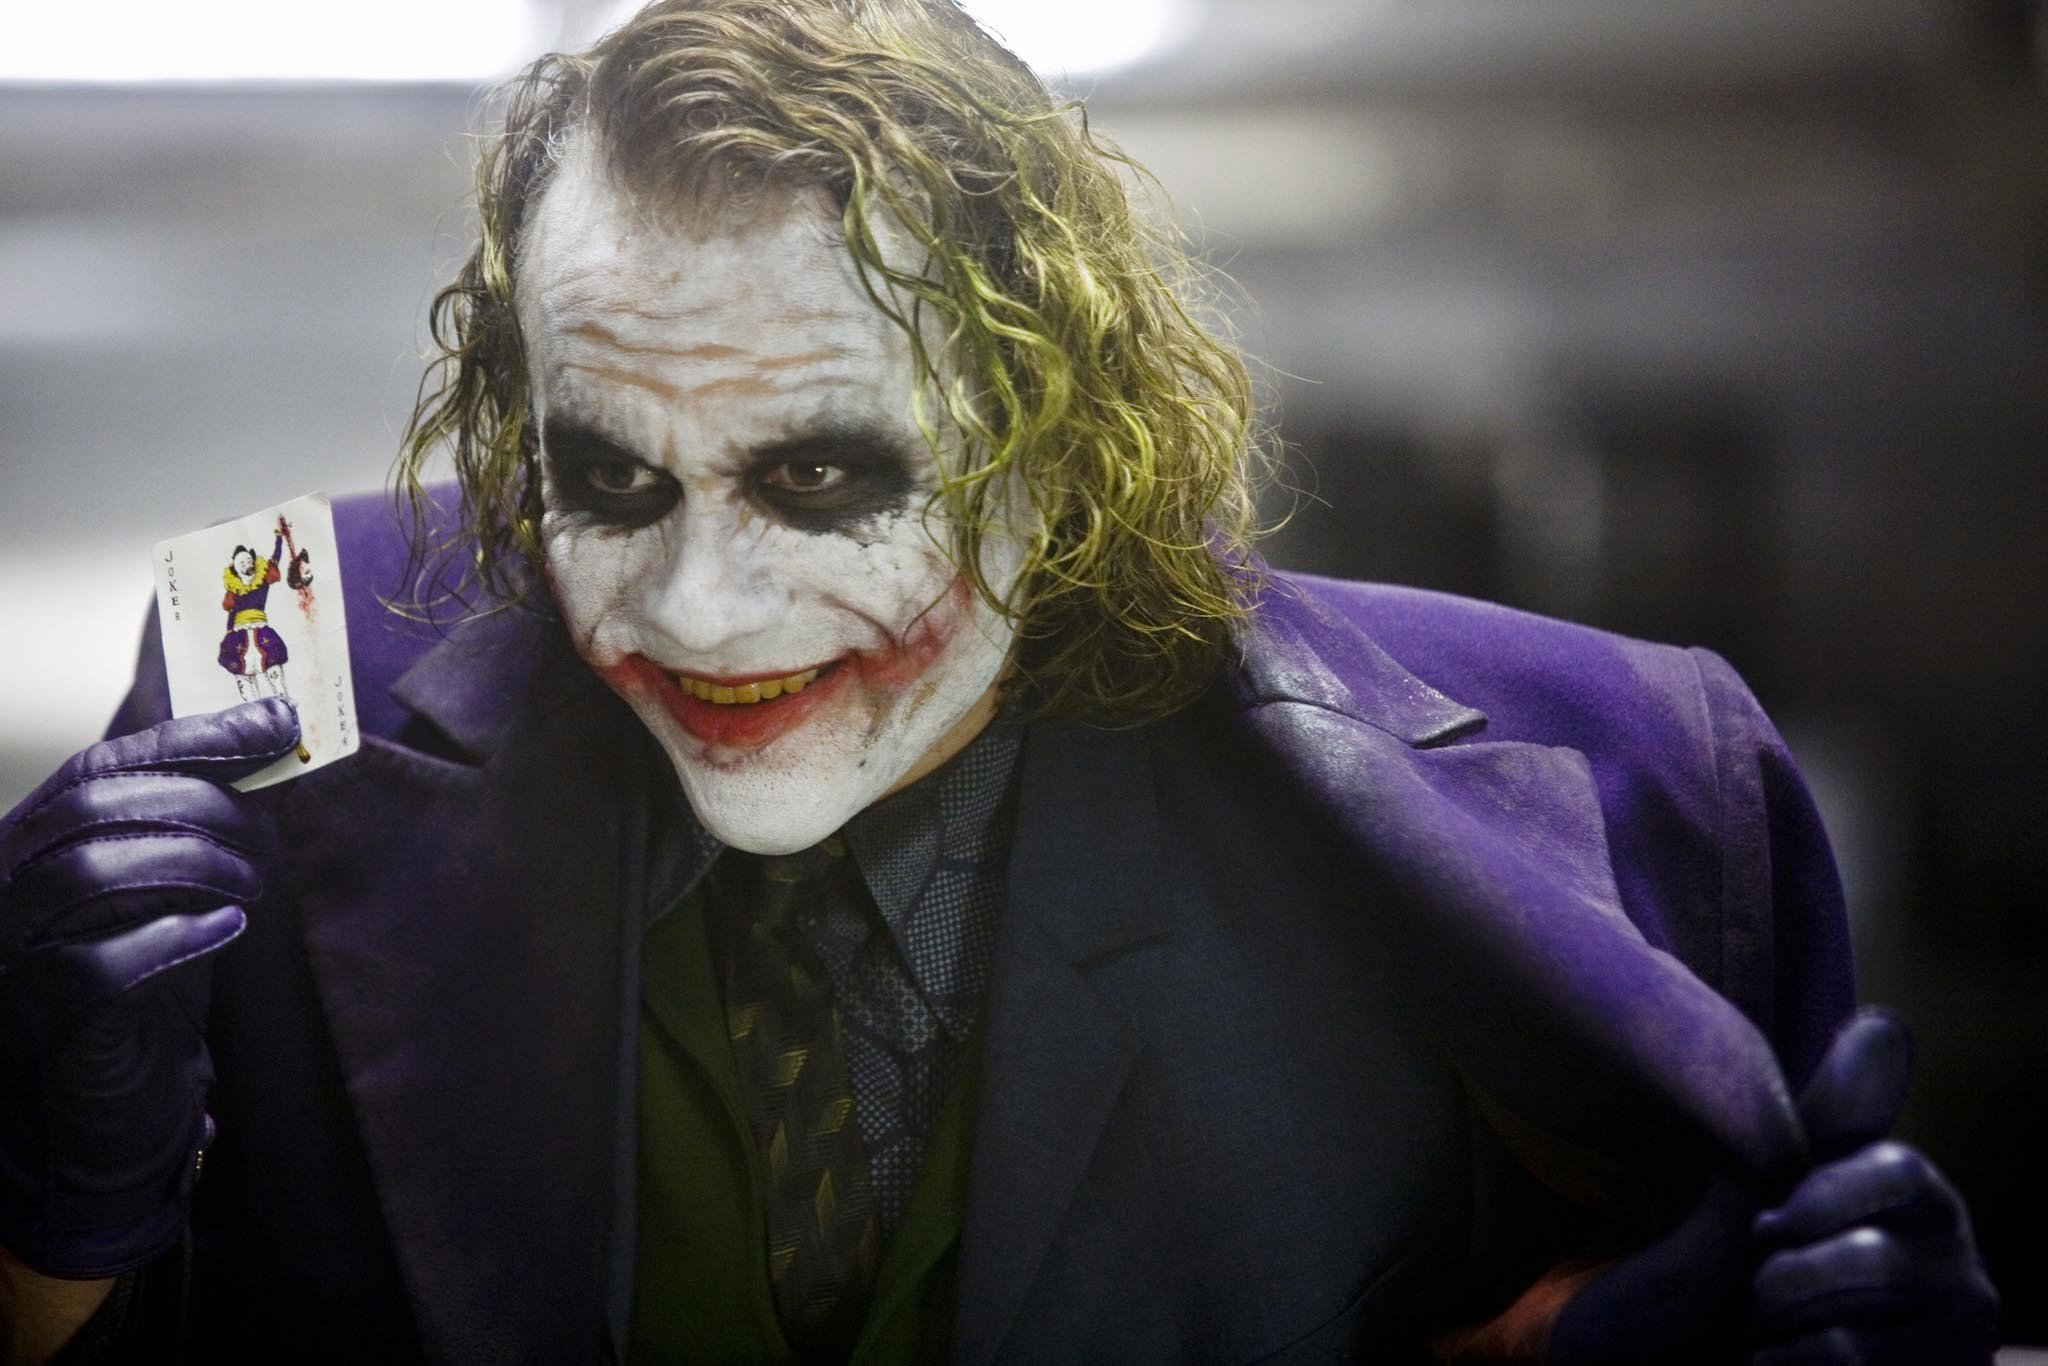 Heath Ledger remembered: A decade after The Dark Knight actor's death, why his legacy remains so important